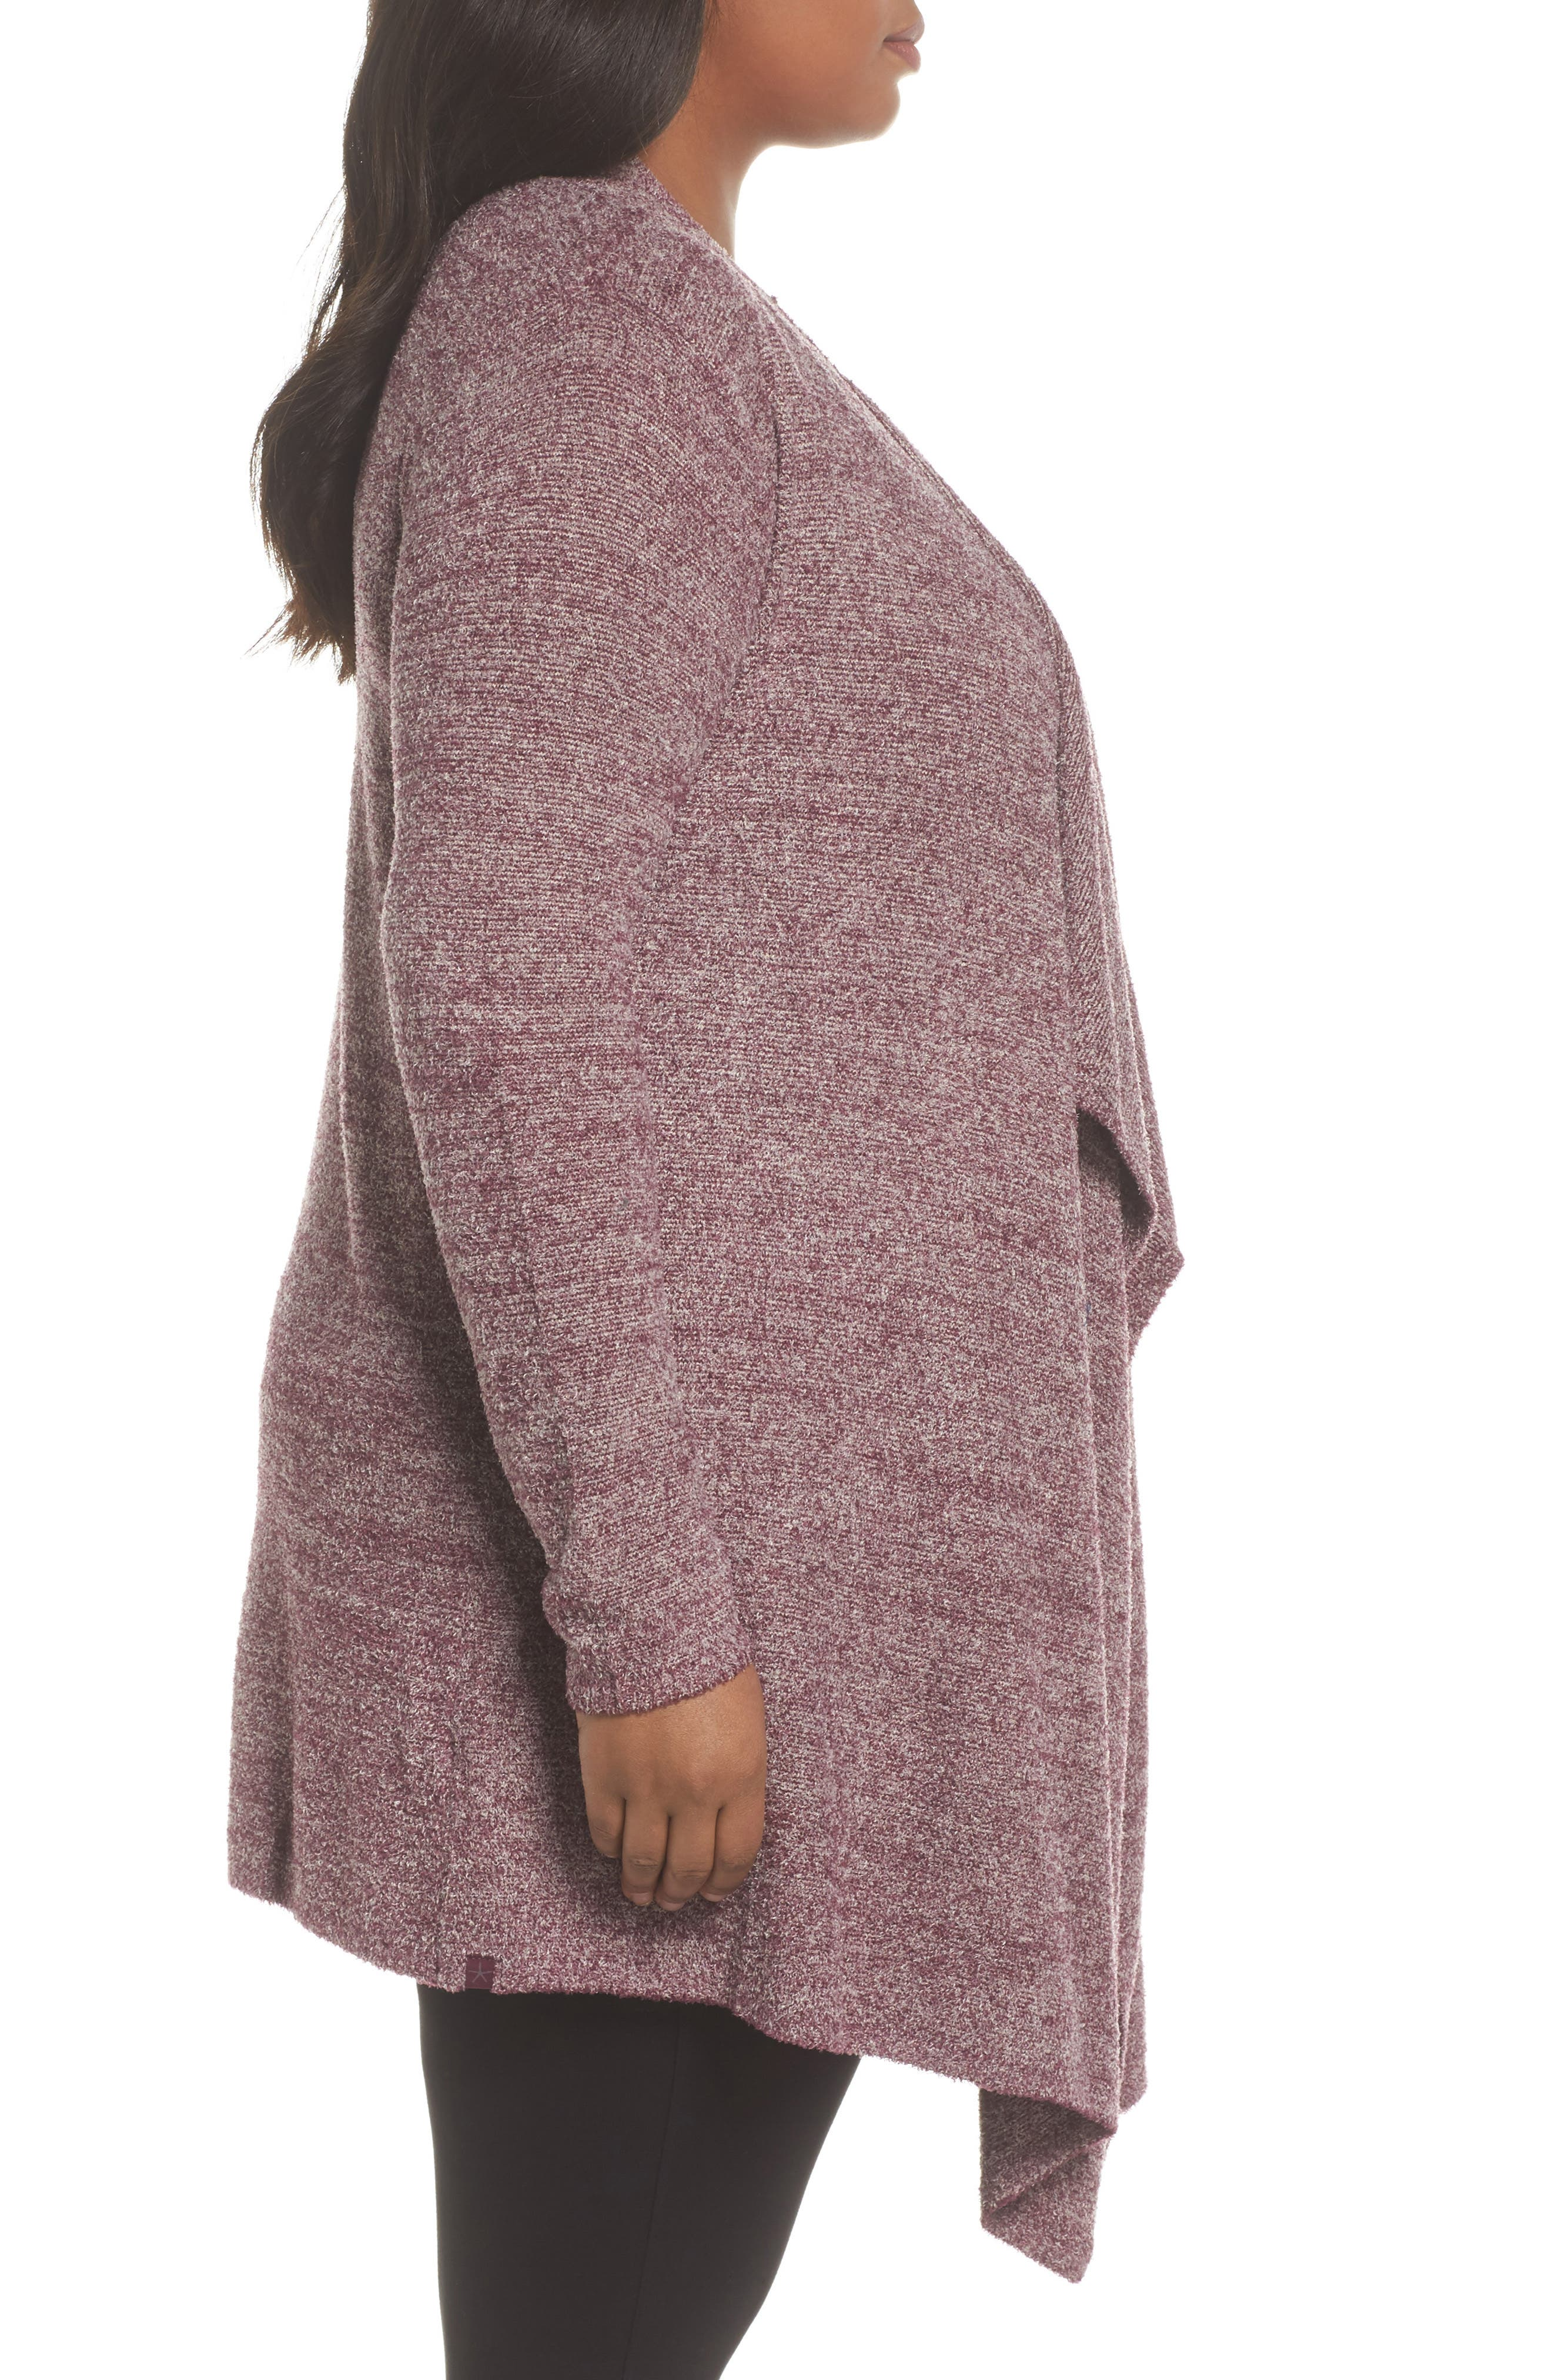 CozyChic Lite<sup>®</sup> Calypso Wrap Cardigan,                             Alternate thumbnail 3, color,                             Burgundy/ Stone